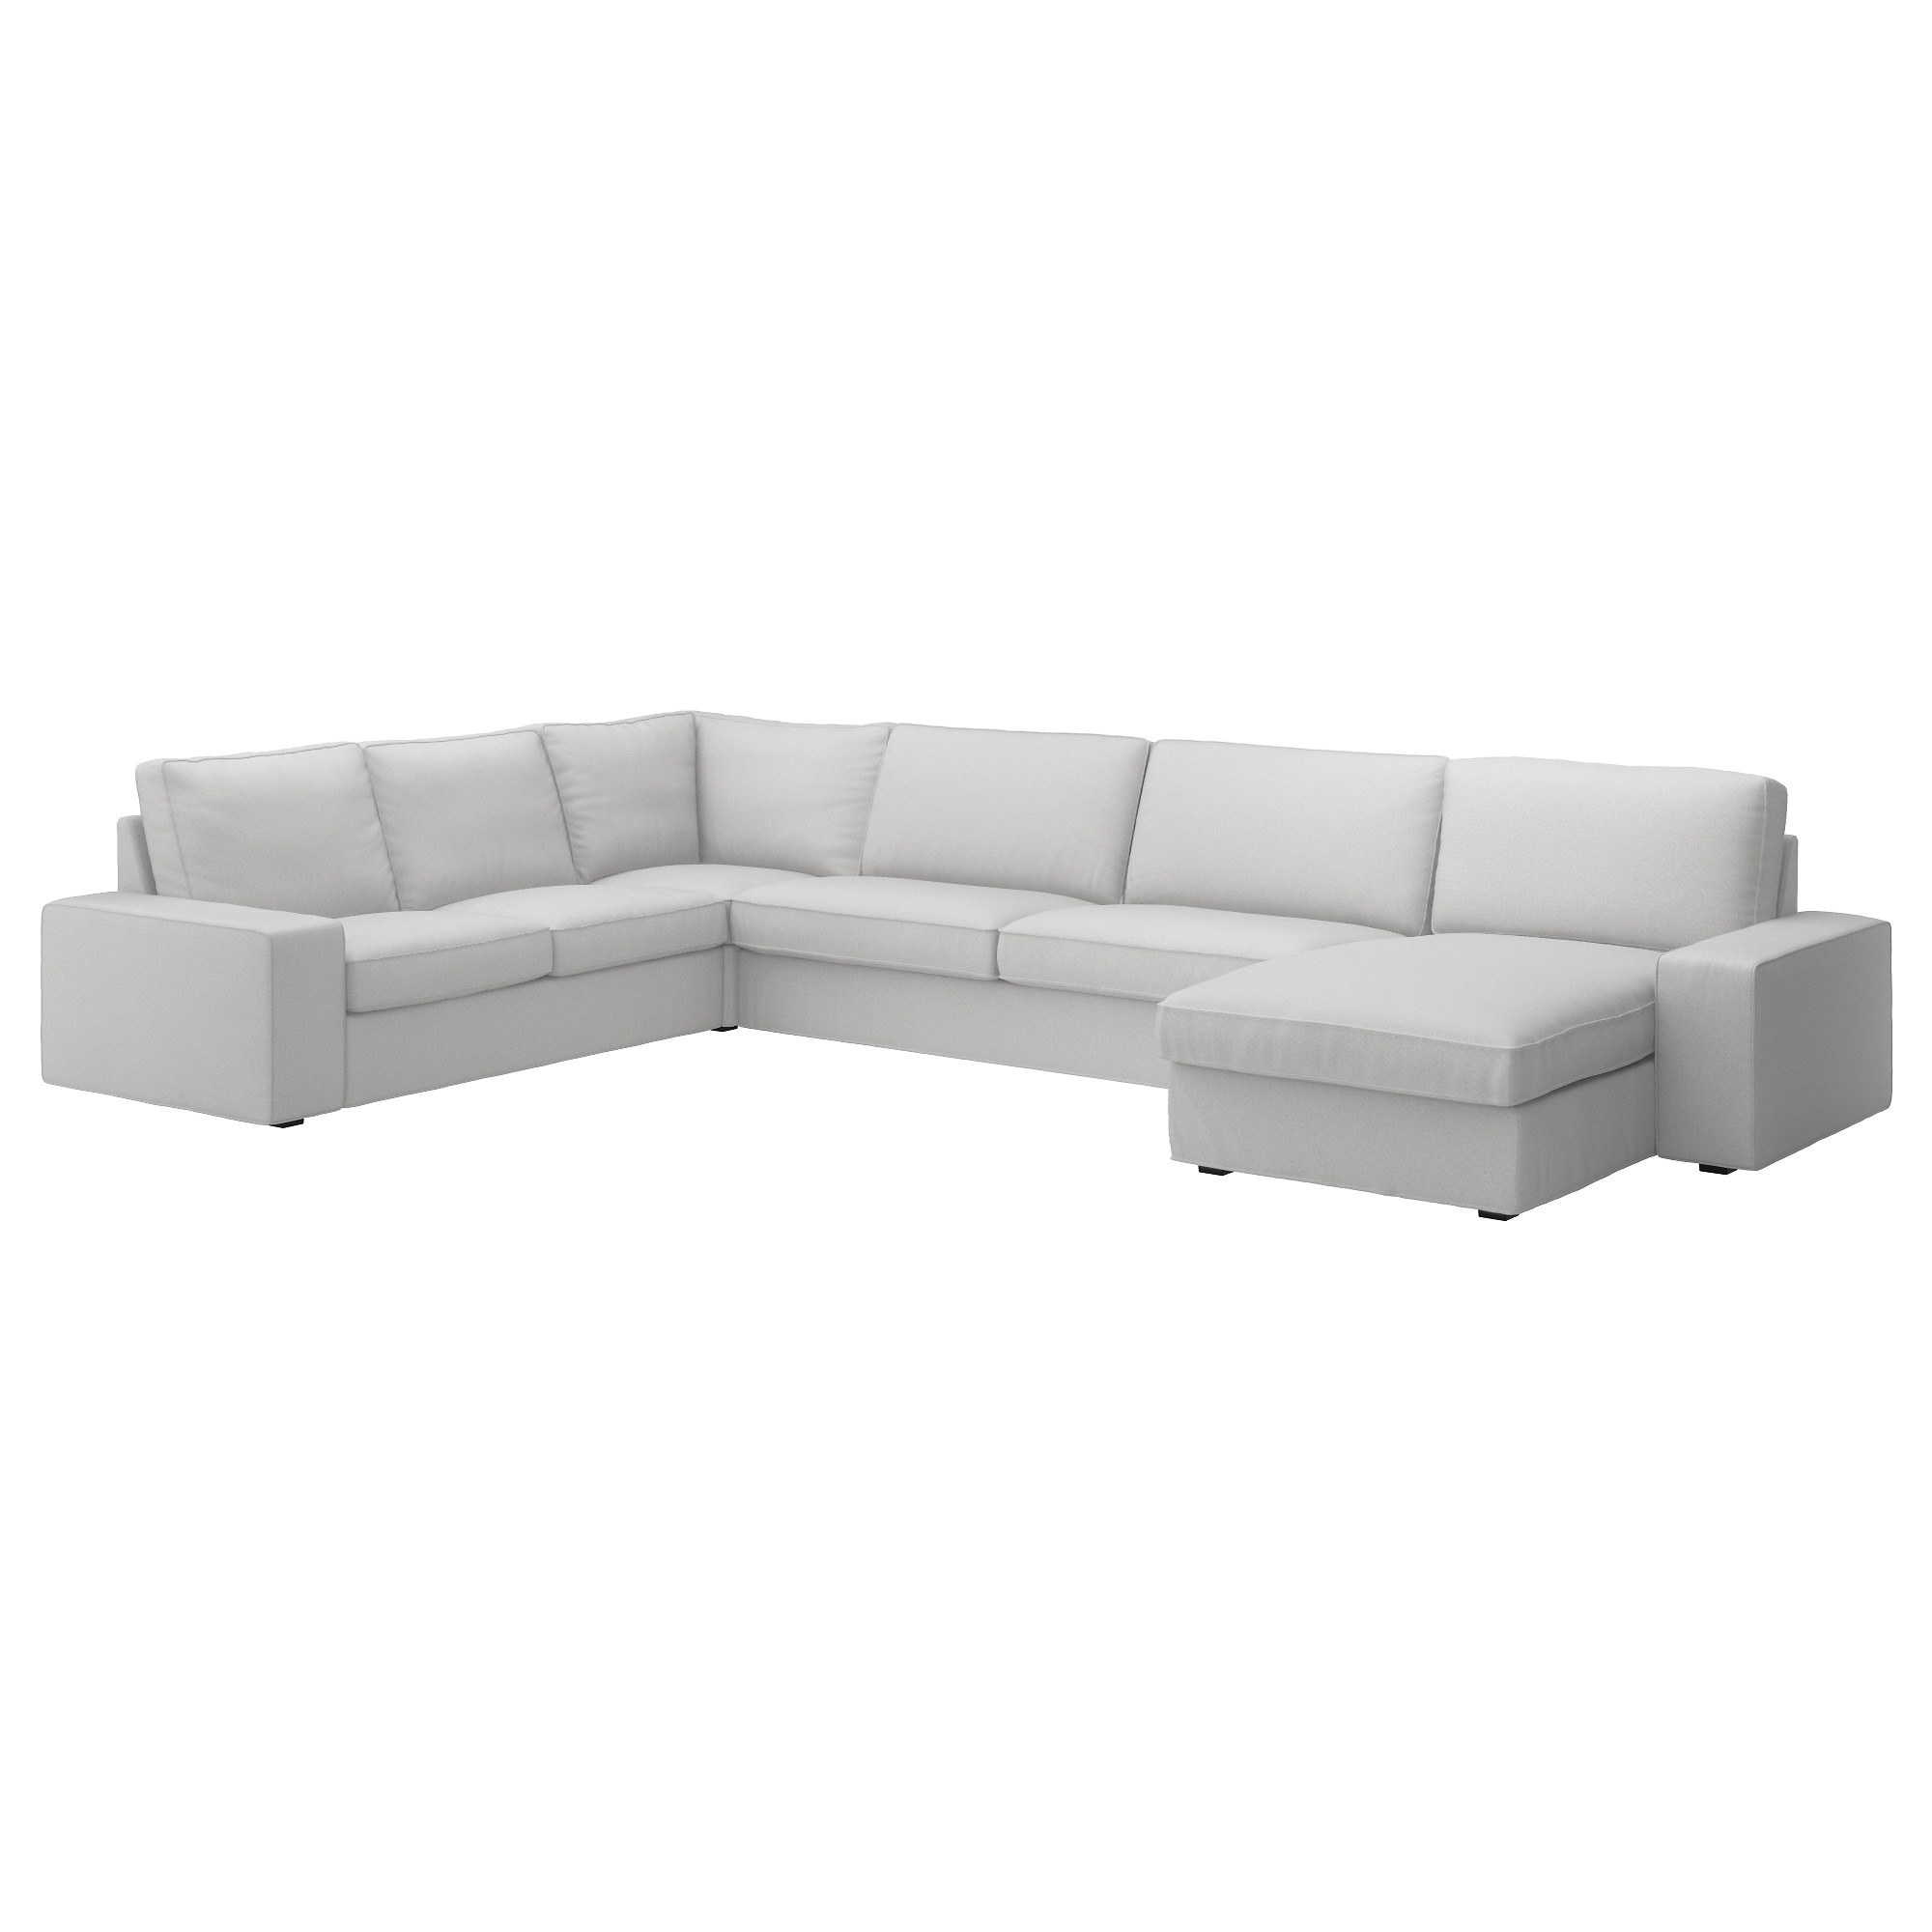 KIVIK Sectional 5 seat Orrsta light gray IKEA